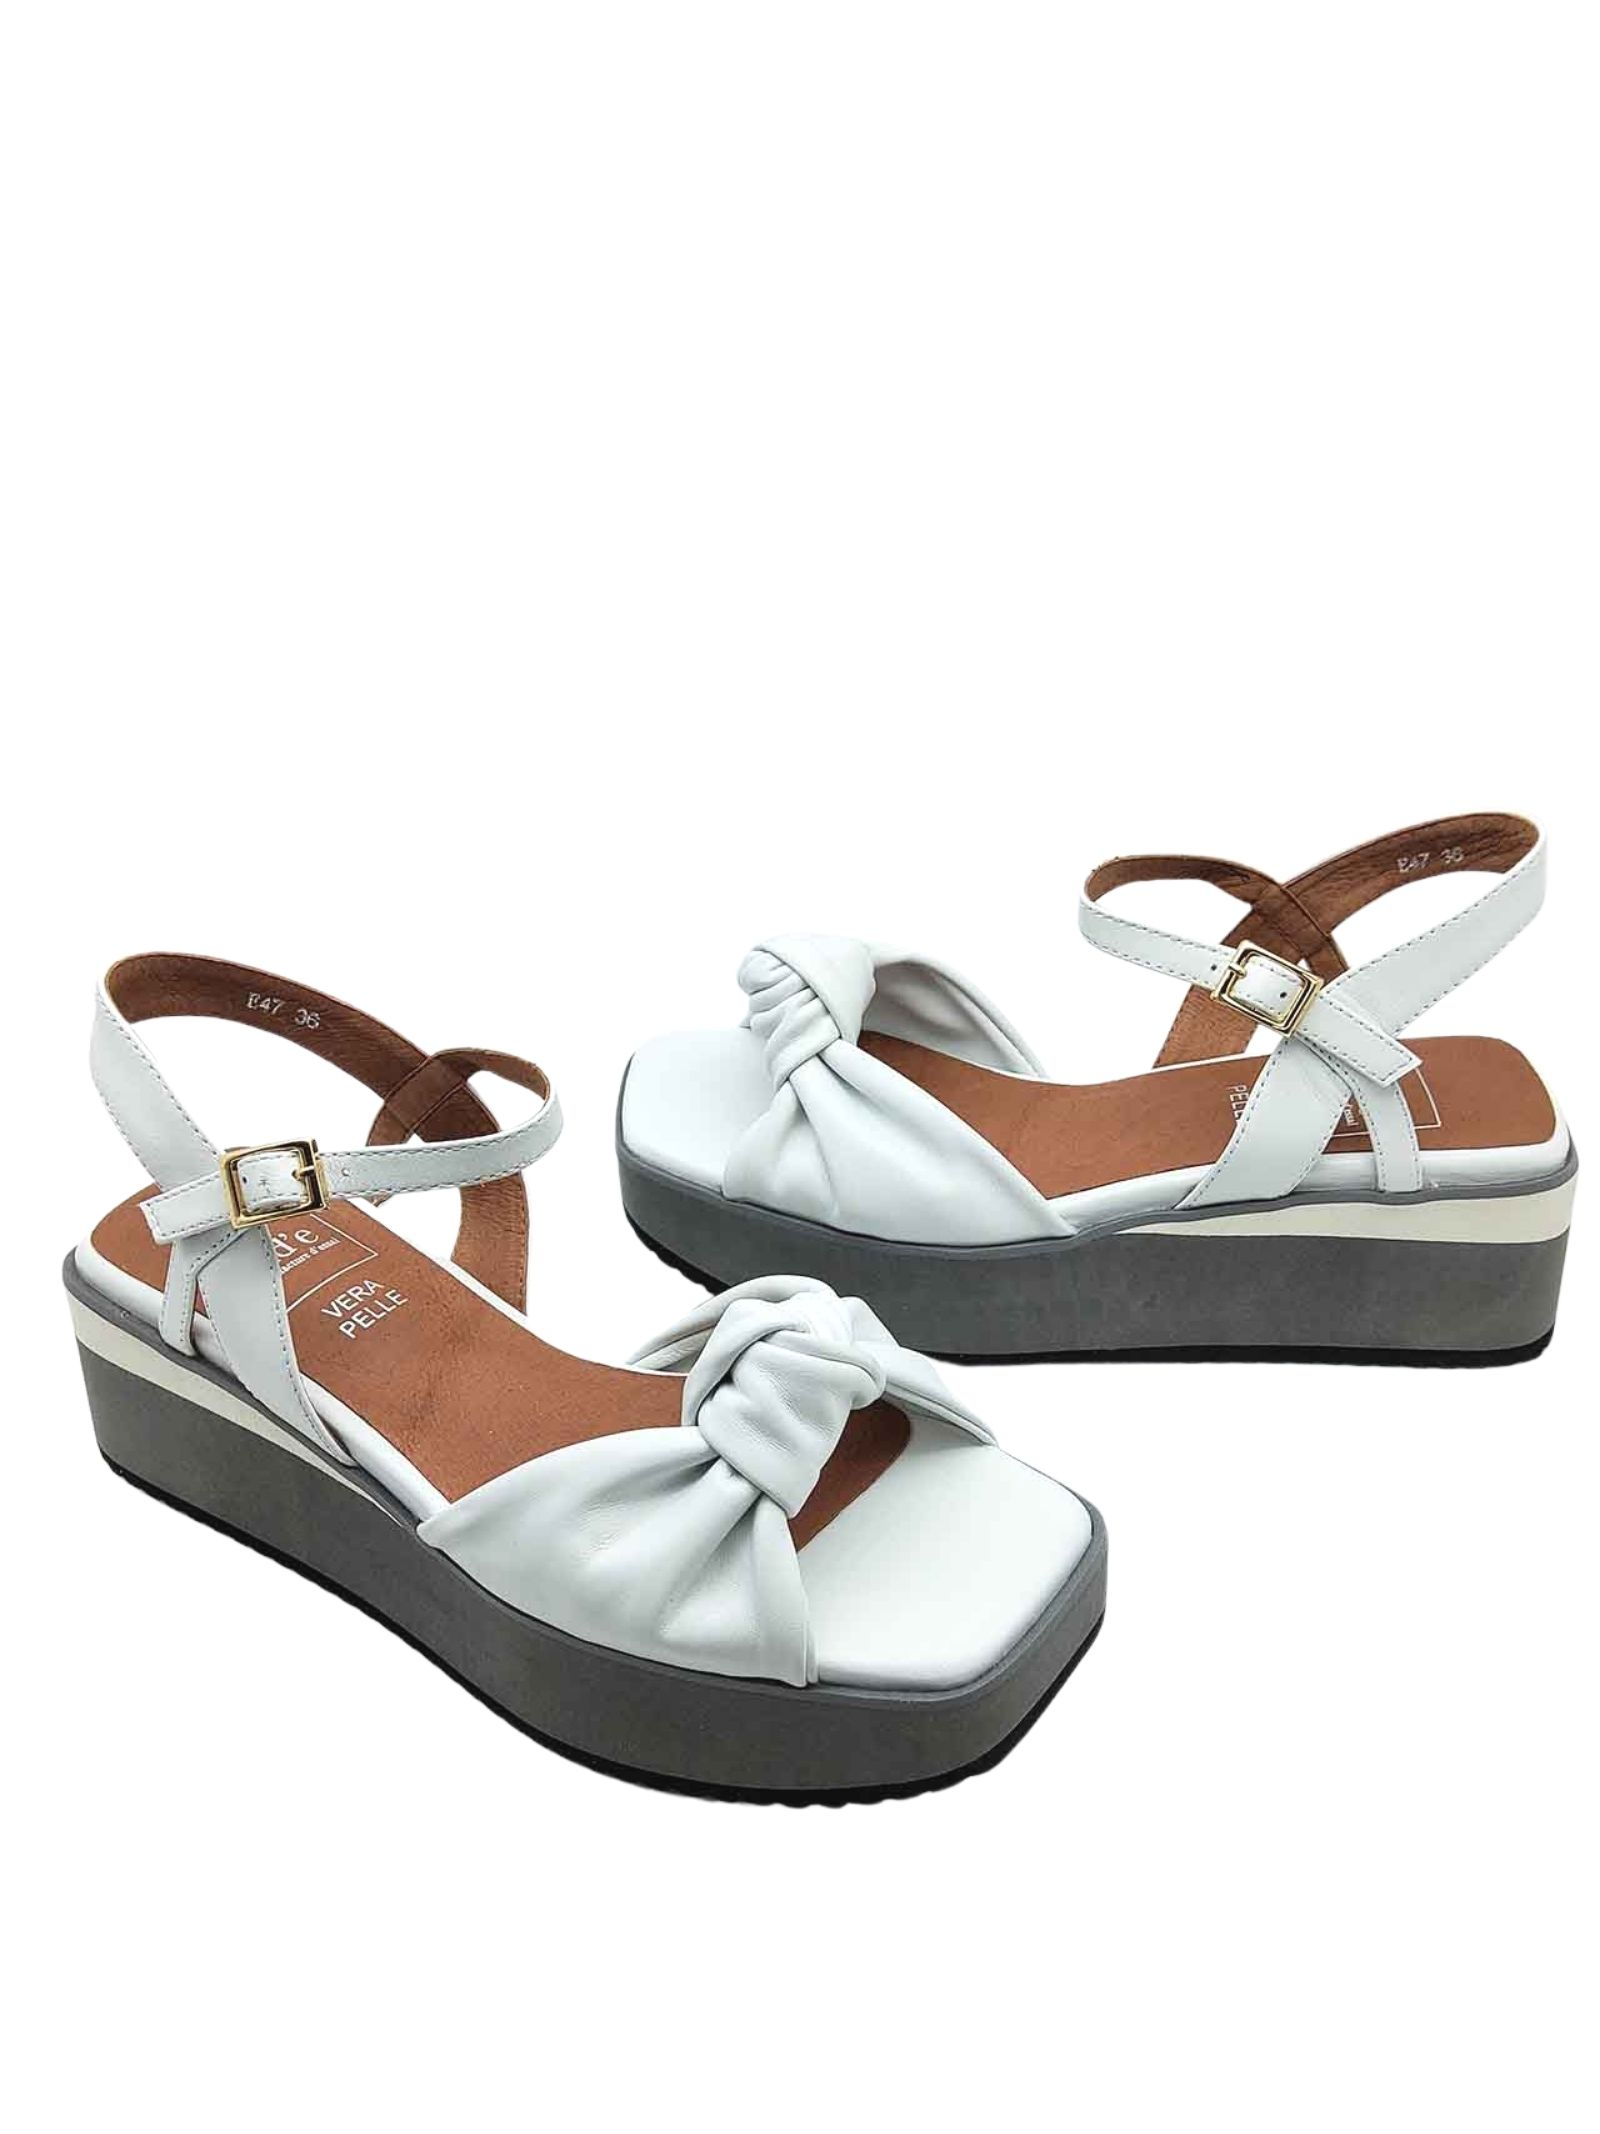 Women's Shoes White Leather Sandals with Knot and Ankle Strap on Bicolor Wedge Manufacture D'Essai   Wedge Sandals   47100